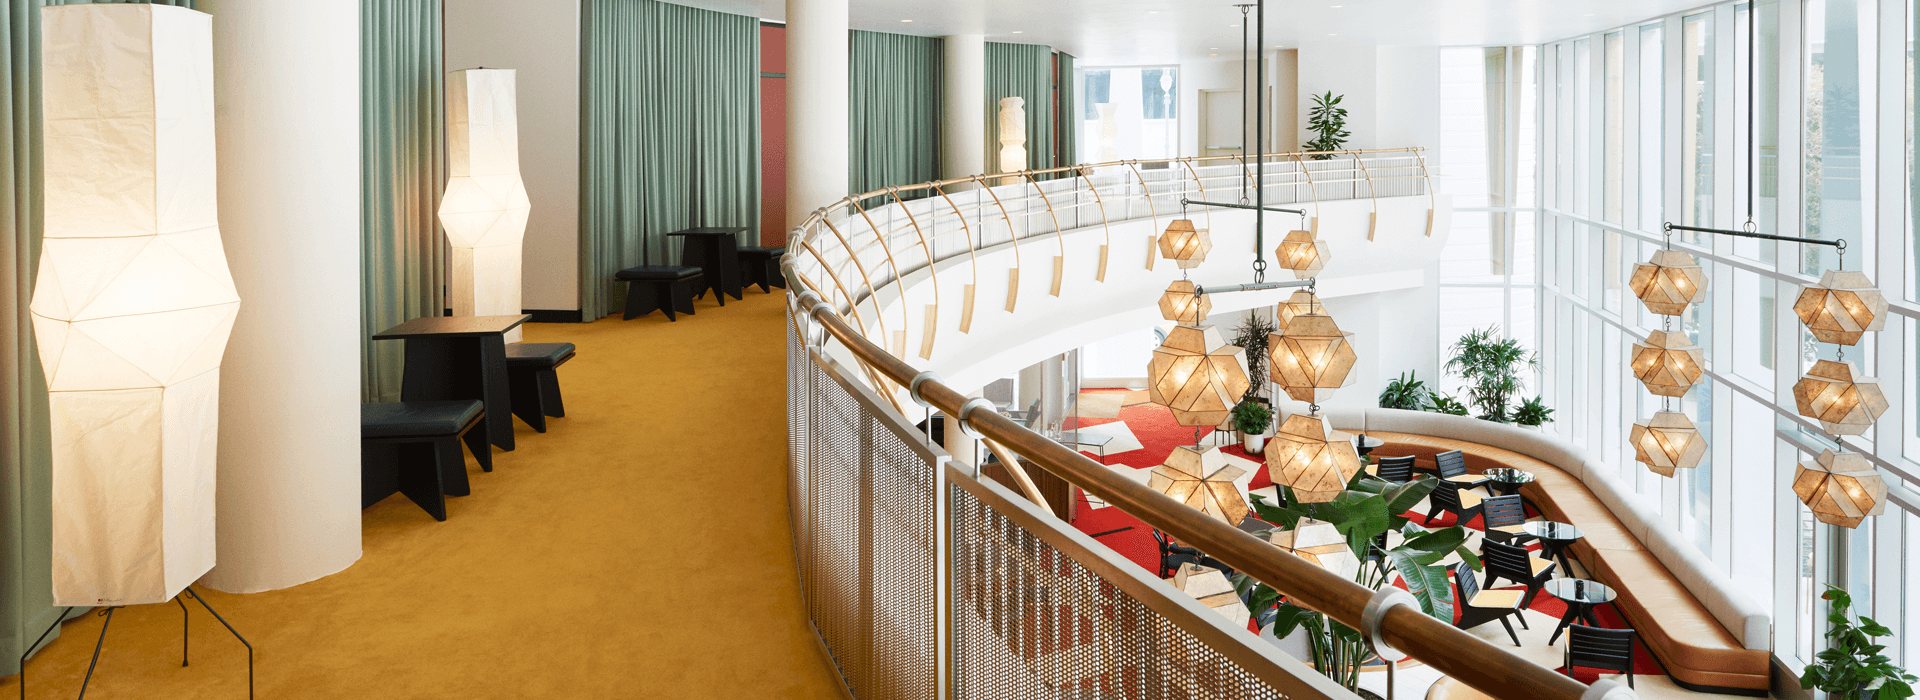 View of the lobby from the balcony.